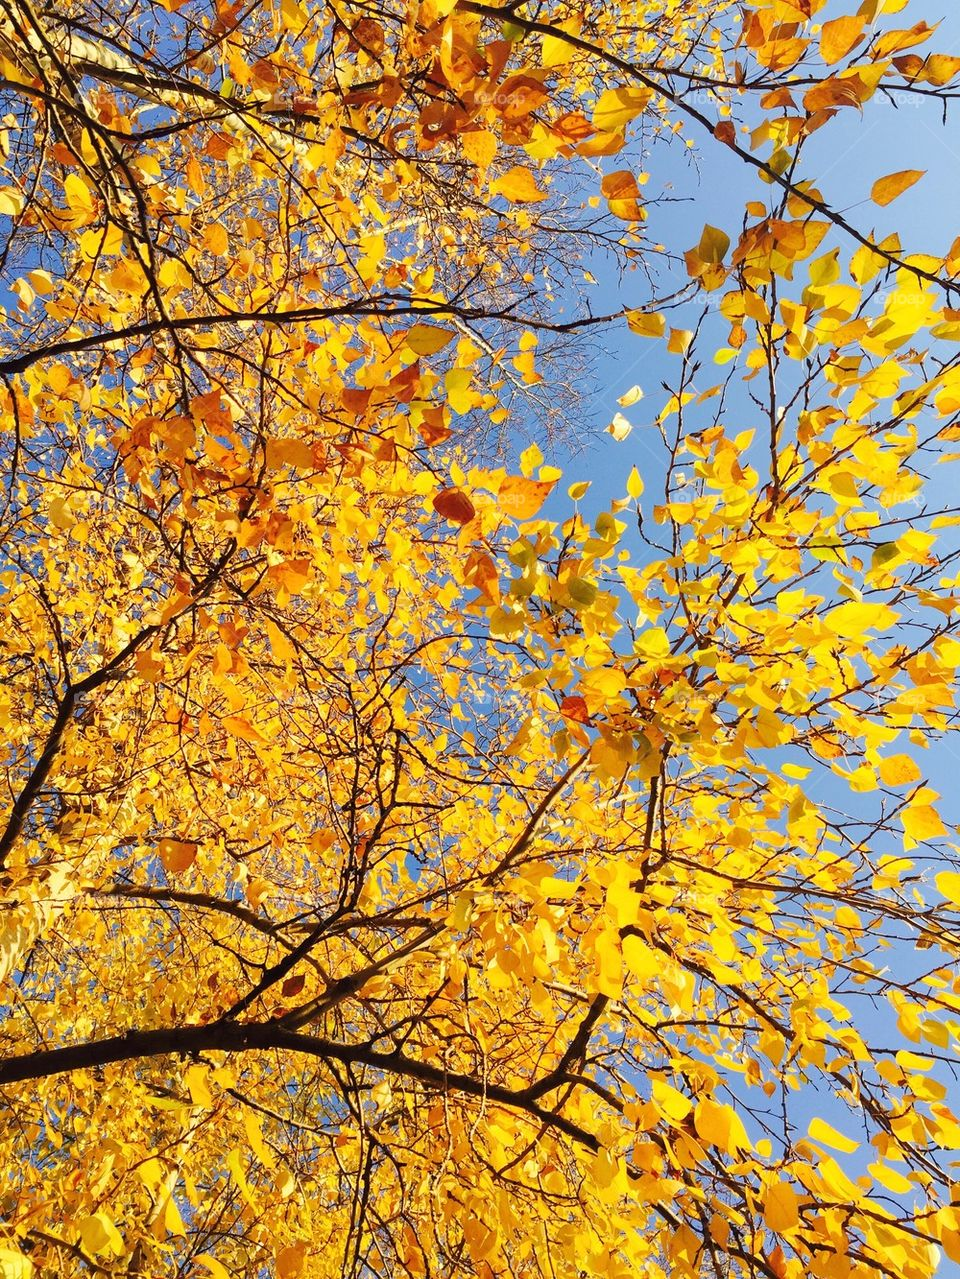 Low angle view of autumn lead on tree